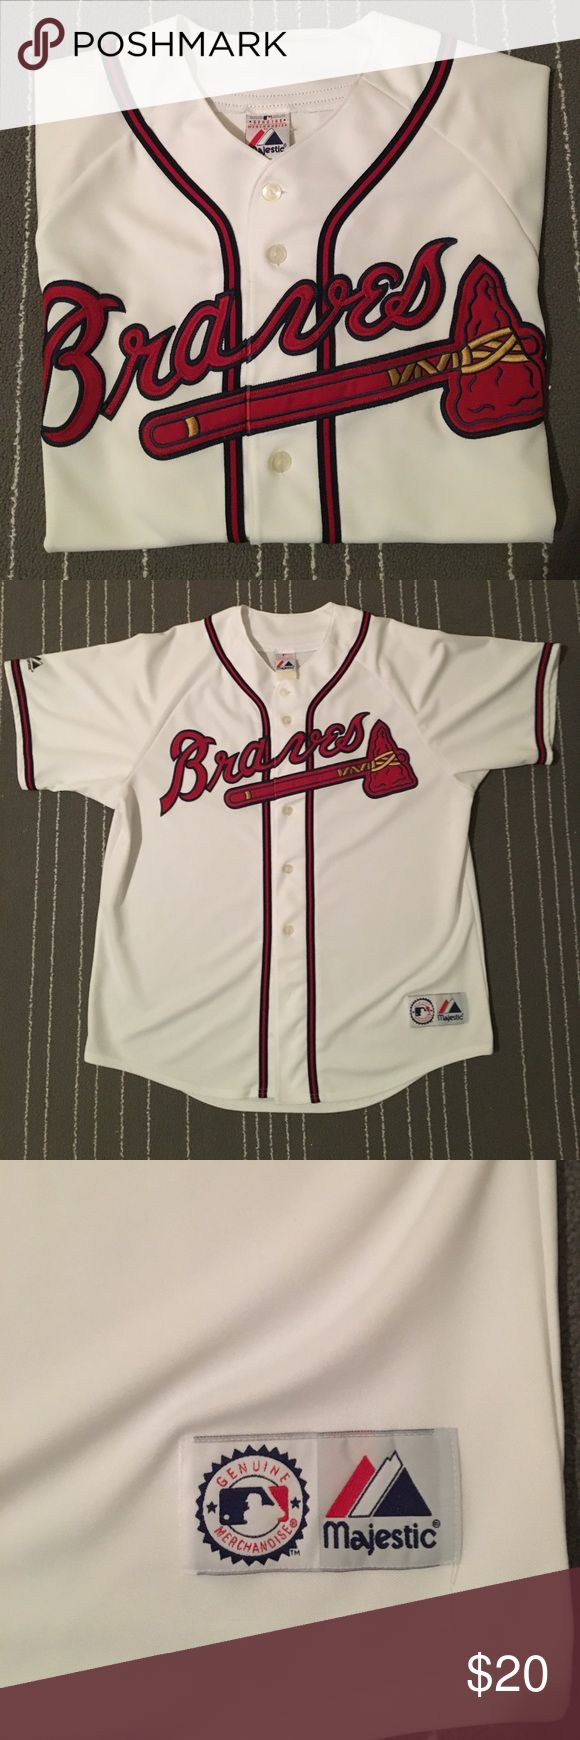 Majestic Genuine Atlanta Braves Men's Jersey MLB Genuine Merchandise by Majestic Atlanta Braves Men's Jersey. The size has worn off the tag but it fits like an XL. The bottom bottom is missing (see pic) but other than that no visible stains/defects that I see. Majestic Shirts